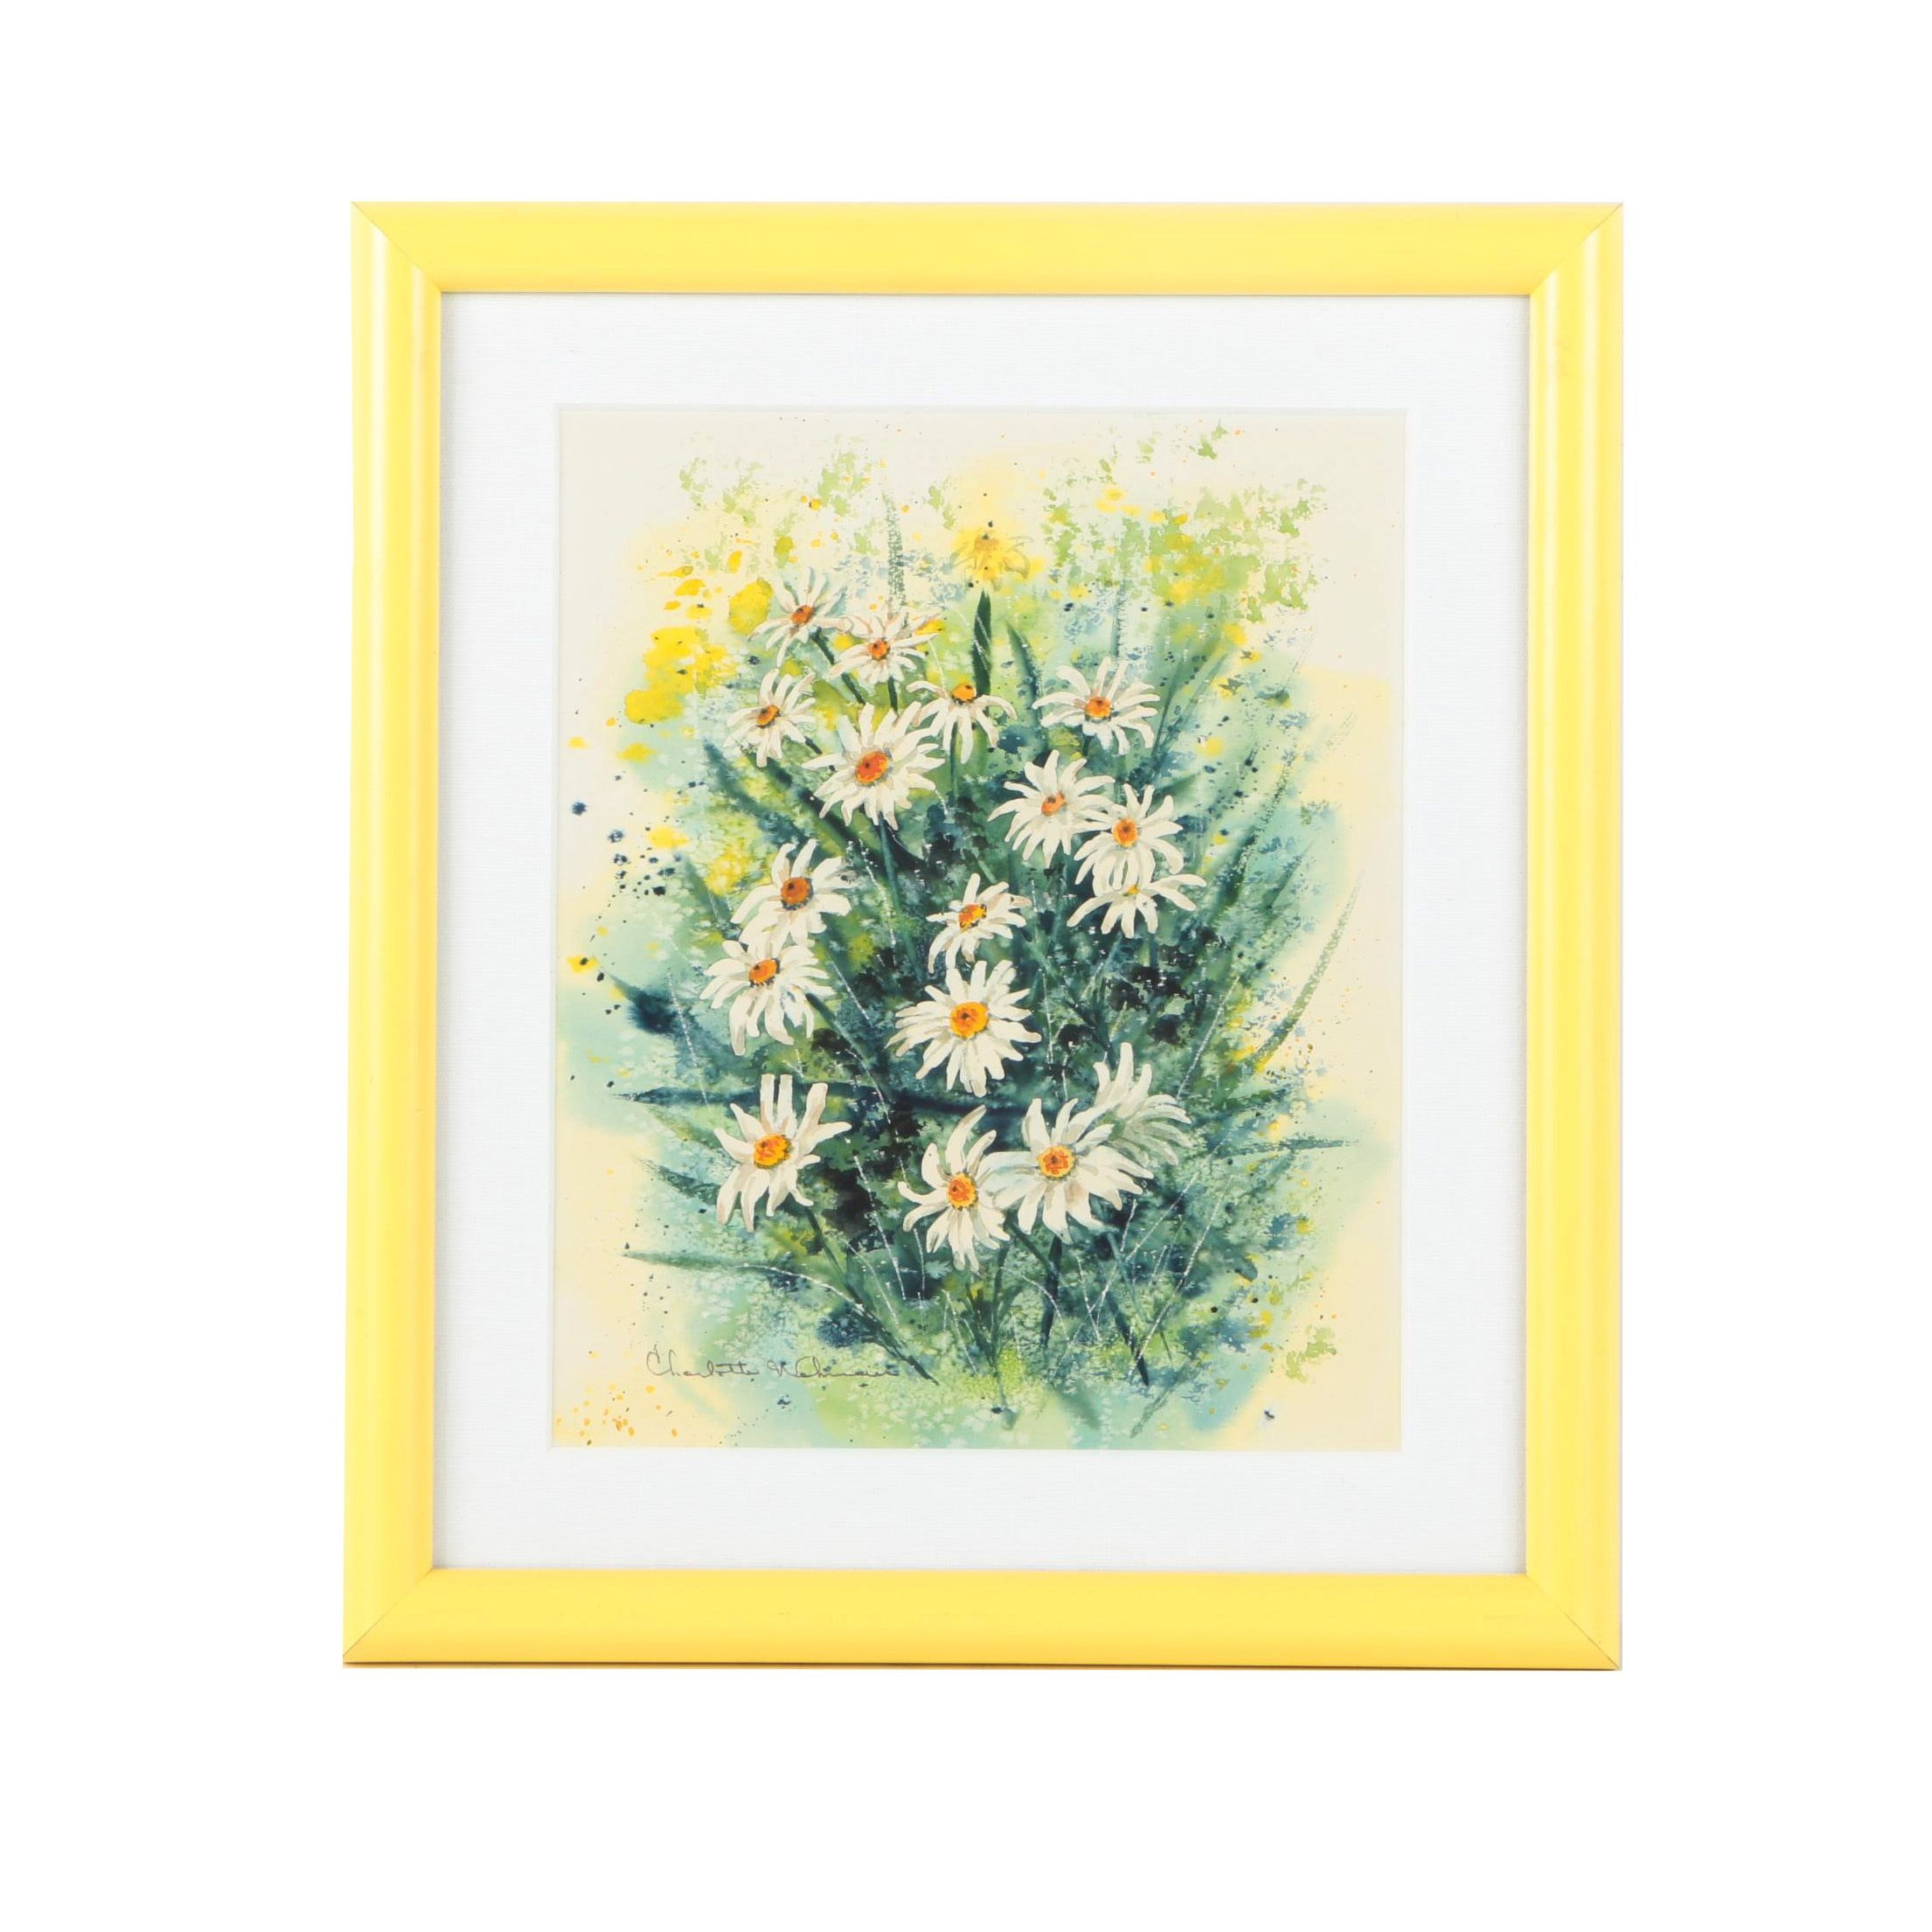 Watercolor Painting on Paper of Daisies